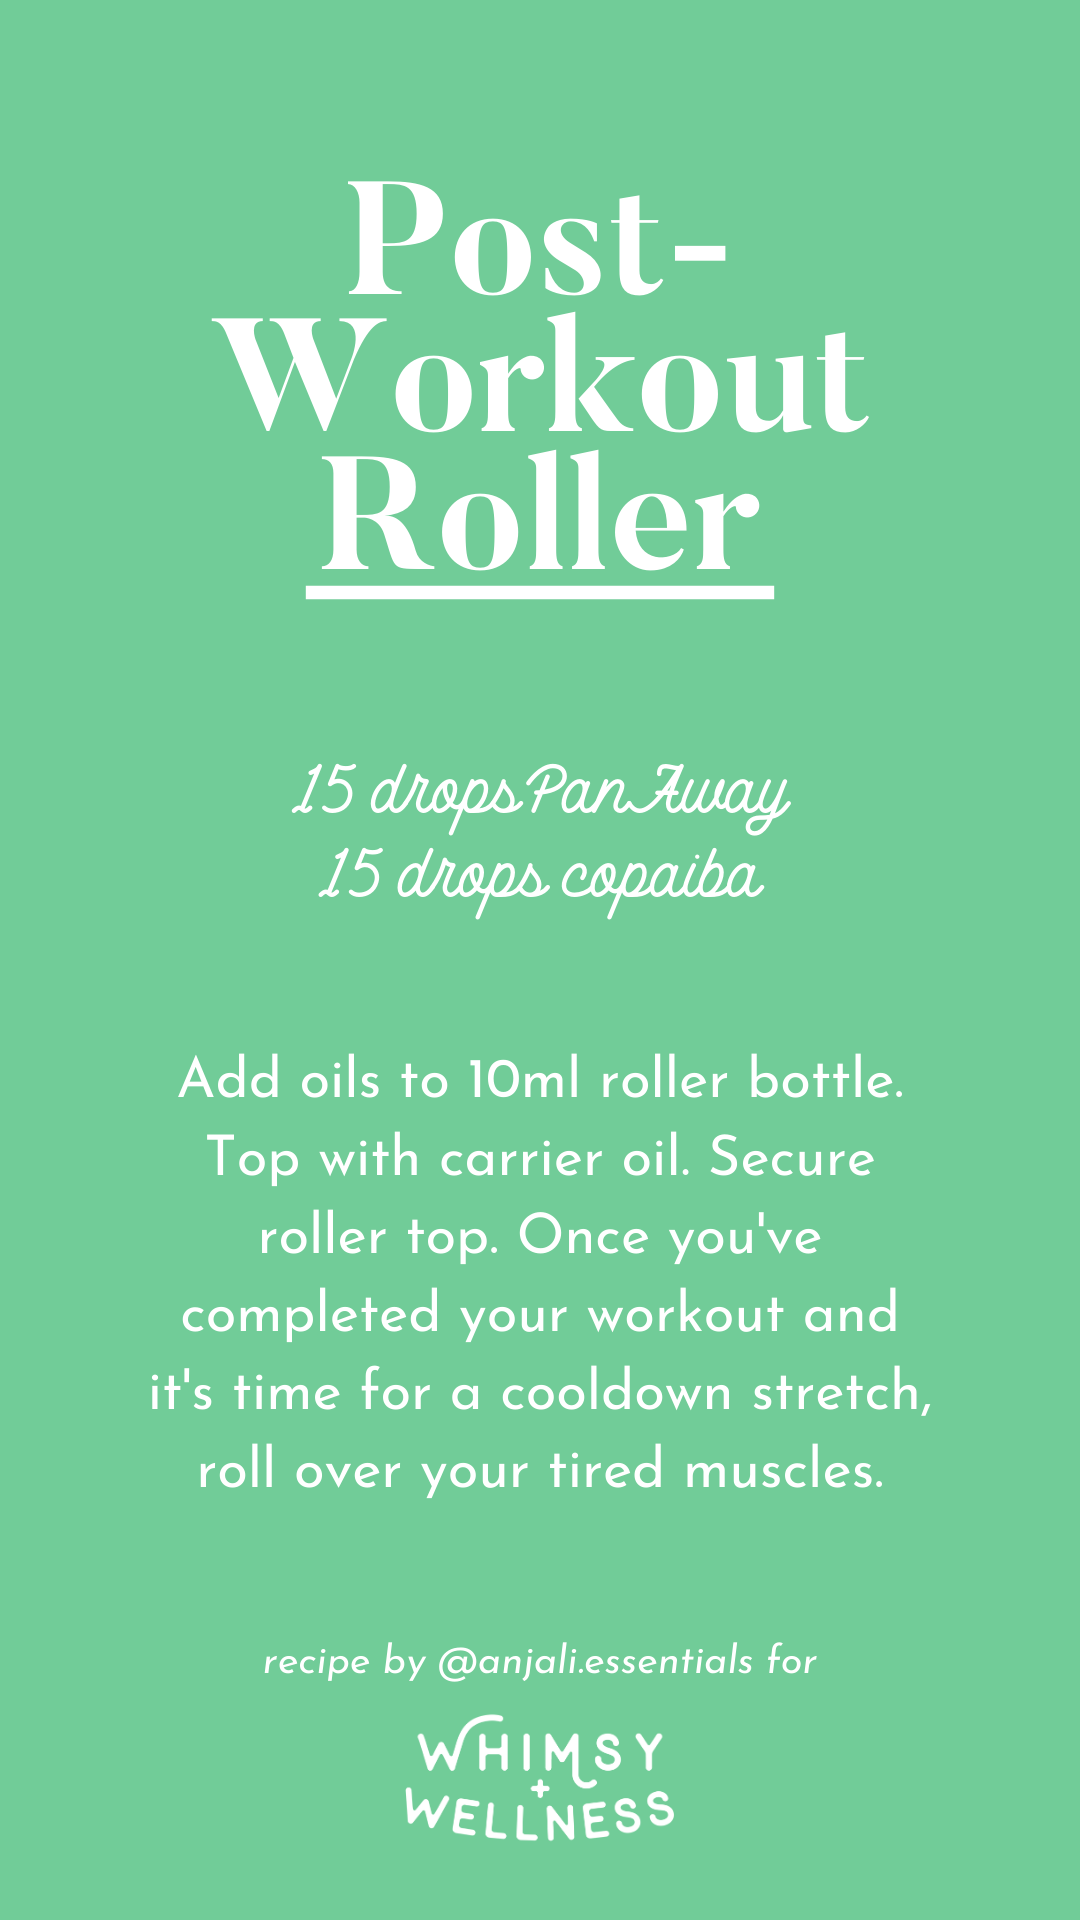 Anjali's Post-Workout Roller recipe, made with Young Living Essential Oils